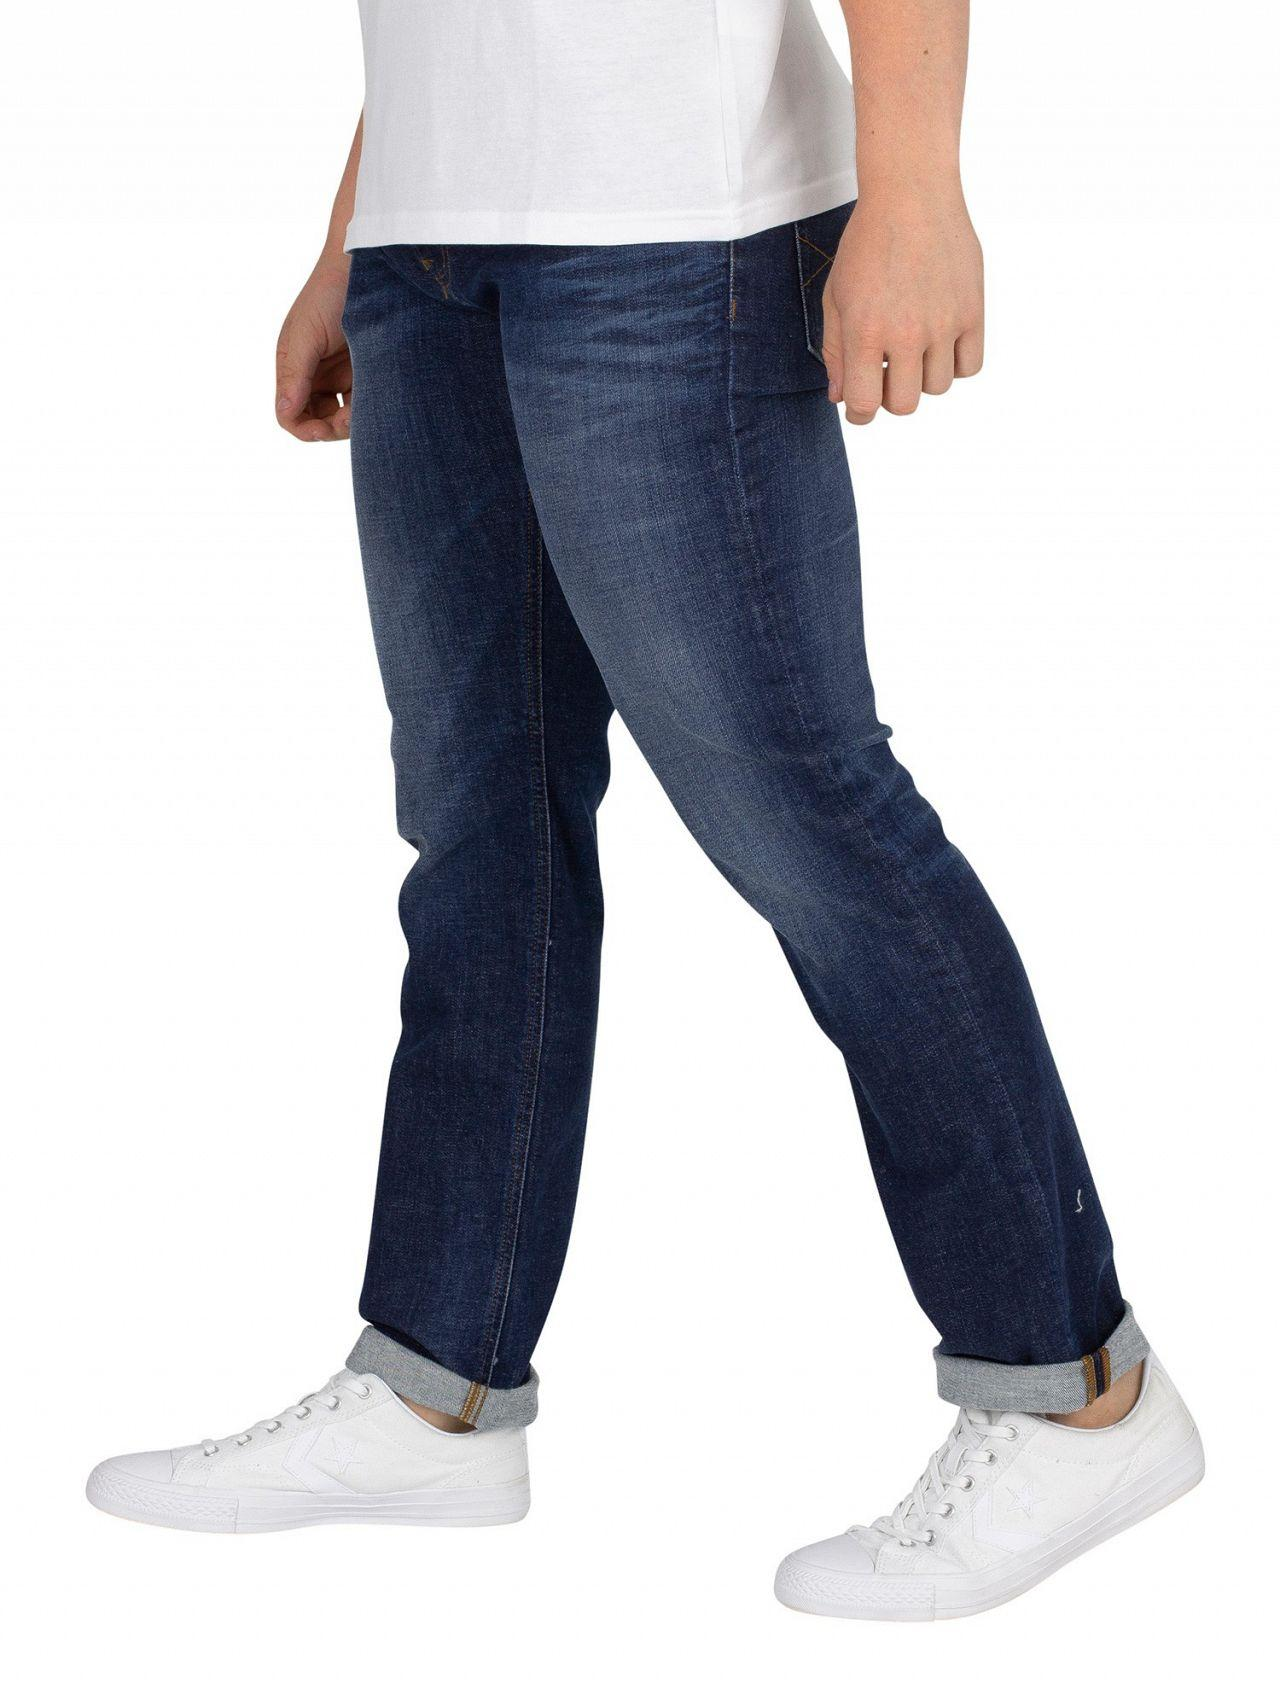 a11597f3e Lyst - Tommy Hilfiger Dynamic Jacob Dark Blue Slim Scanton Jeans in Blue for  Men